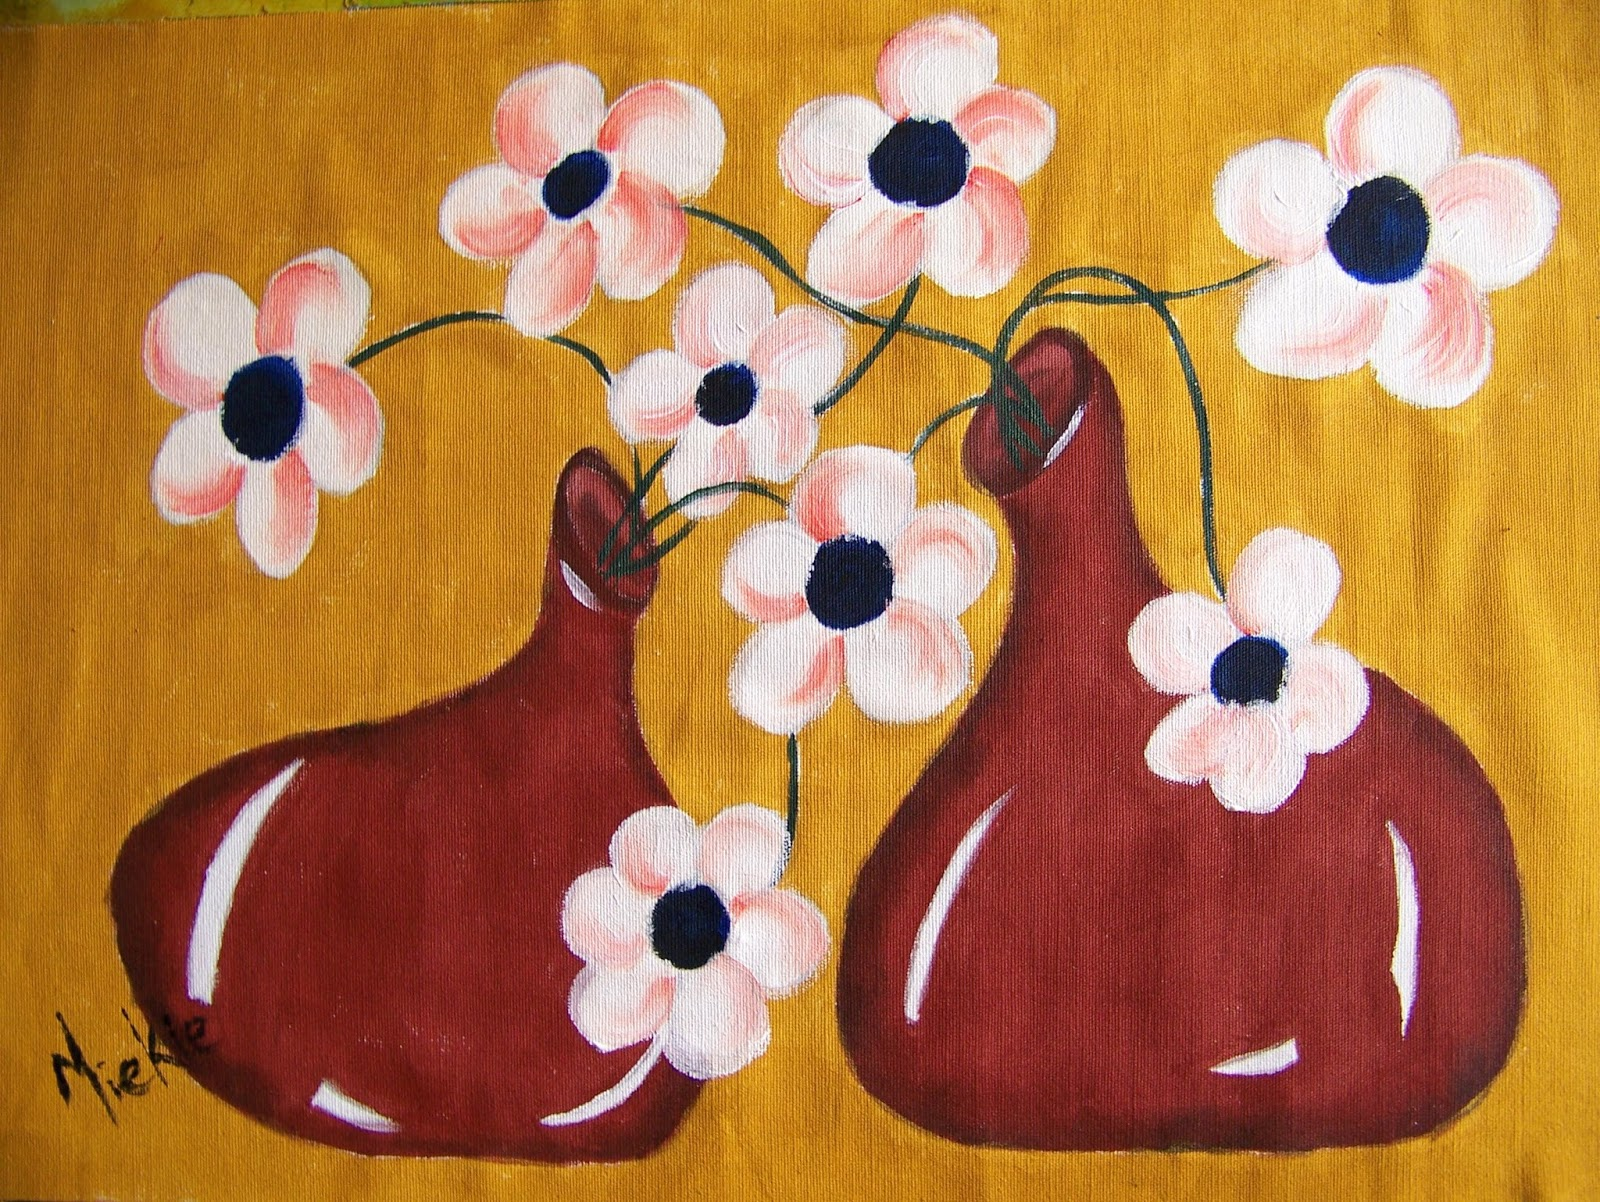 A Pretty Talent Blog Flower Pots Fabric Painting Part 1 Of 2